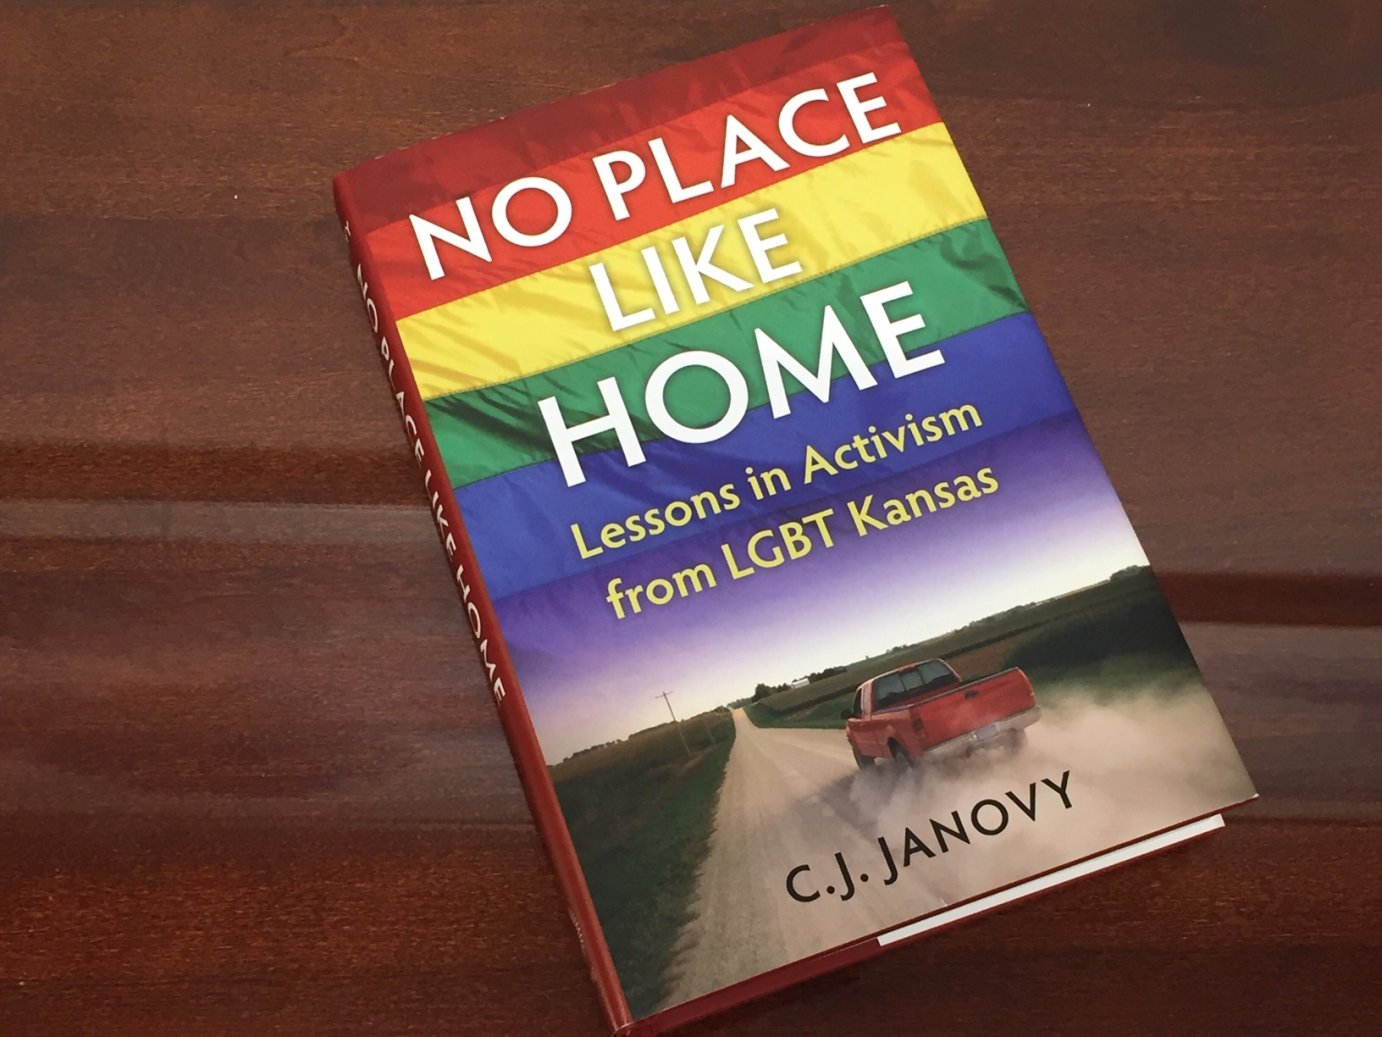 C.J. Janovy's book No Place Like Home, published by University Press of Kansas (Photo by J. Schafer)